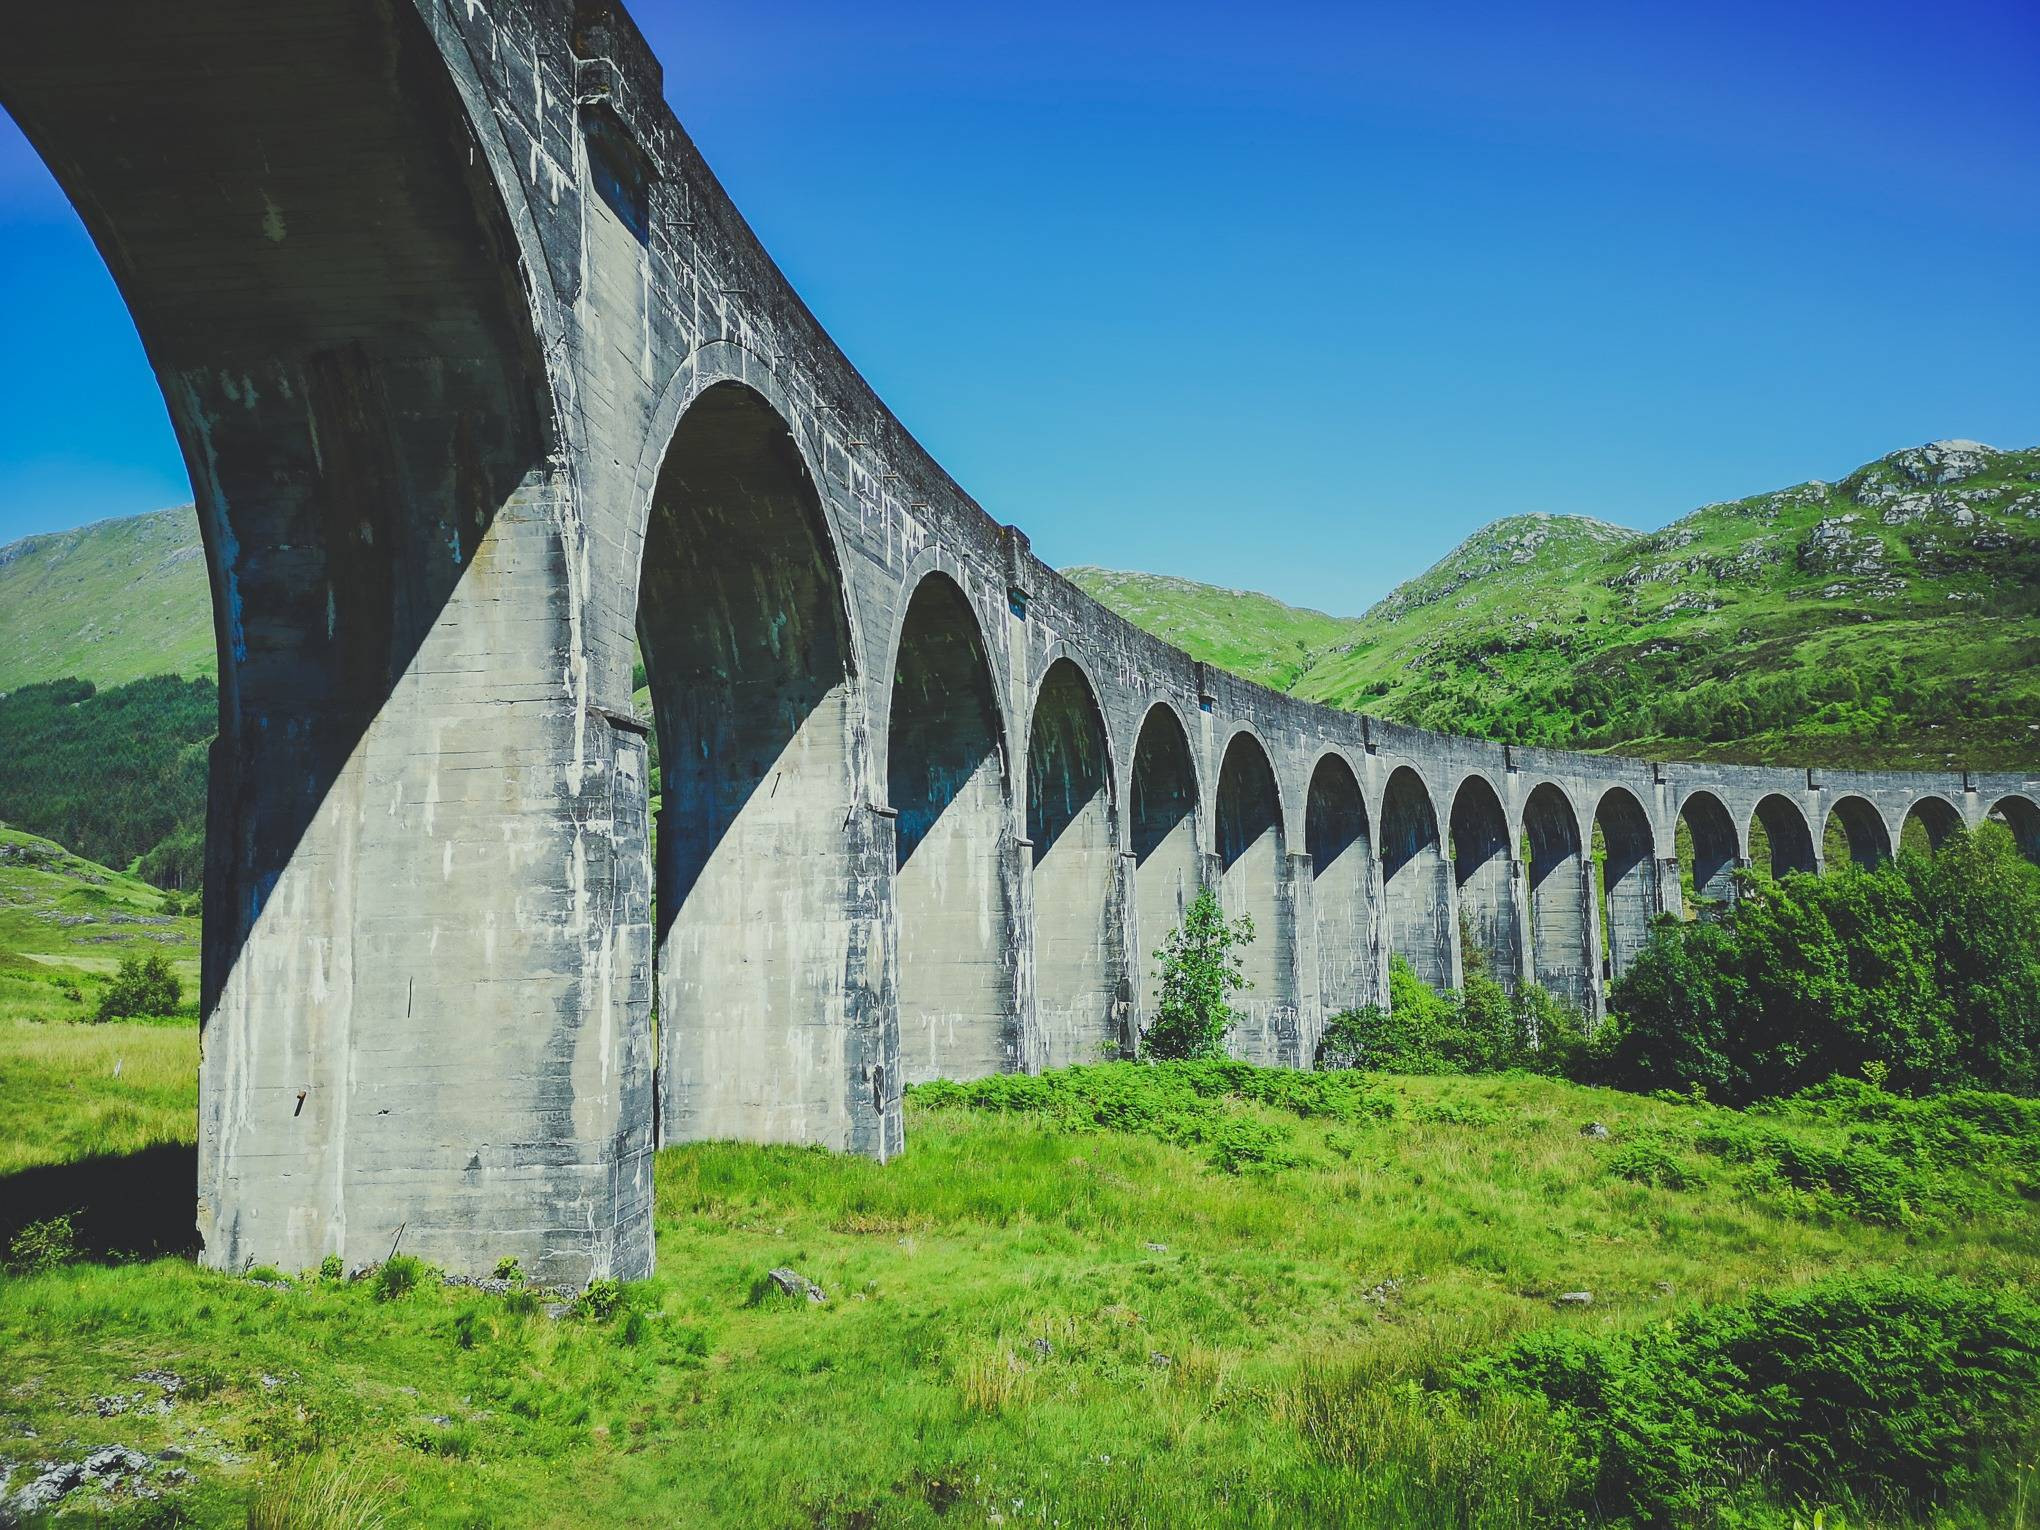 Glenfinnan Viaduct from below on a sunny summer day, Scotland. Photo by Alis Monte [CC BY-SA 4.0], via Connecting the Dots